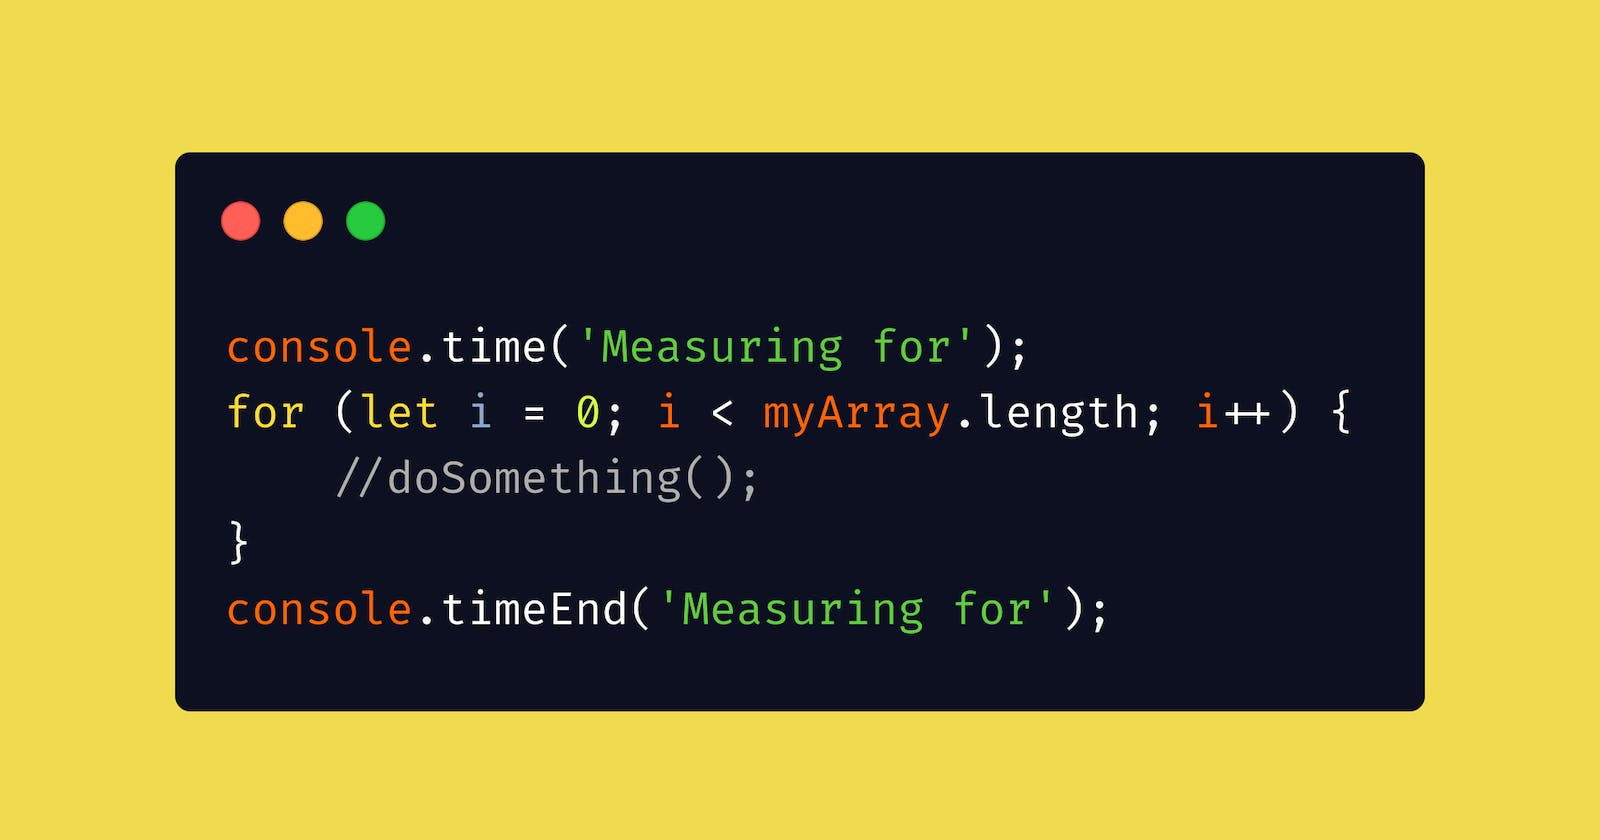 console.time() in JavaScript